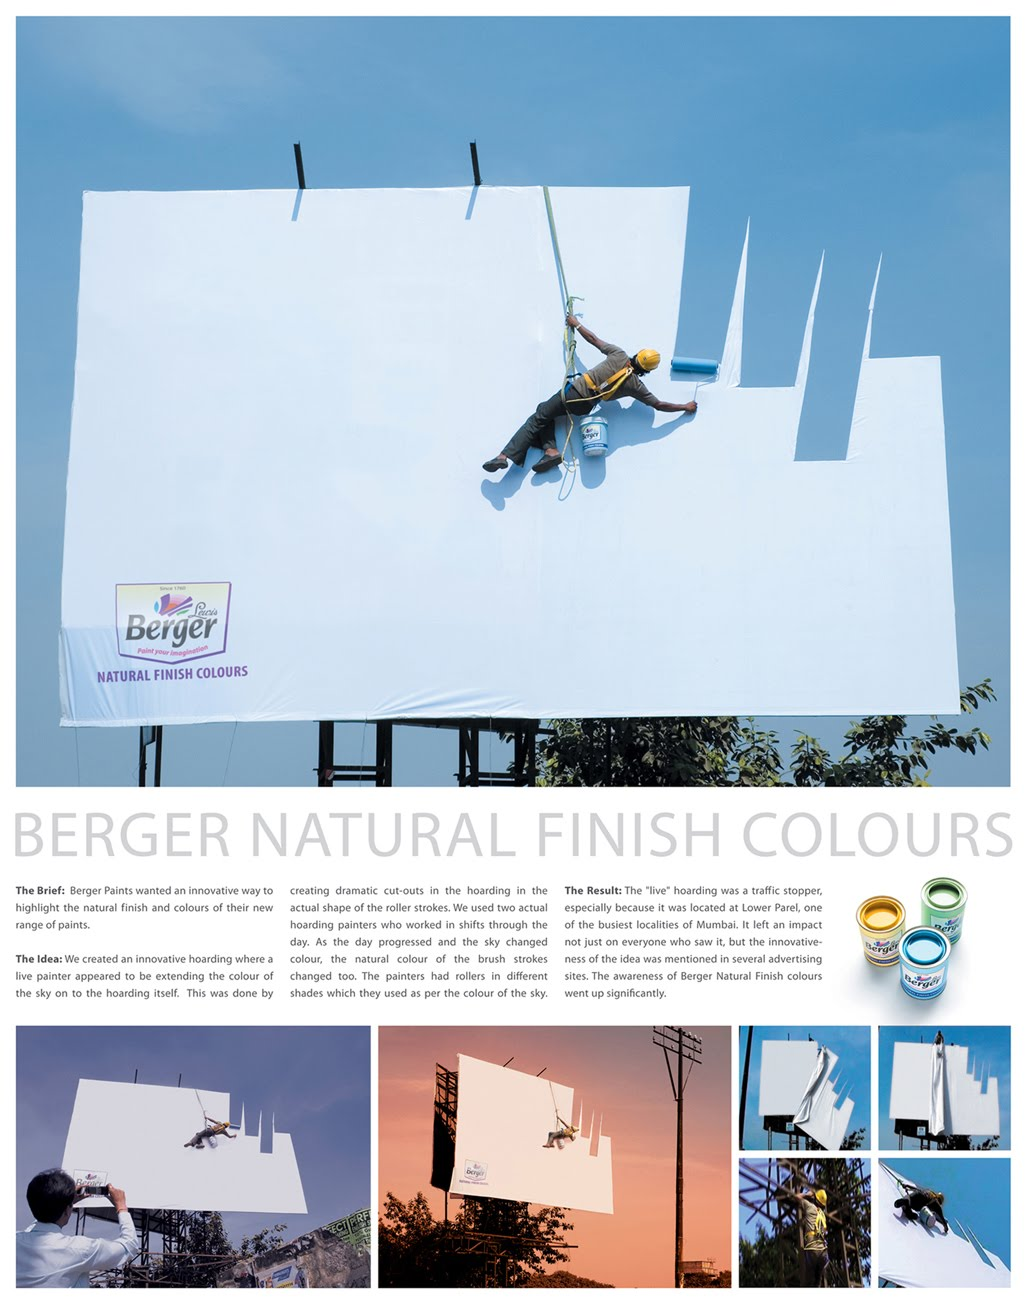 berger-natural-finishing-colours-billboard-ad-night